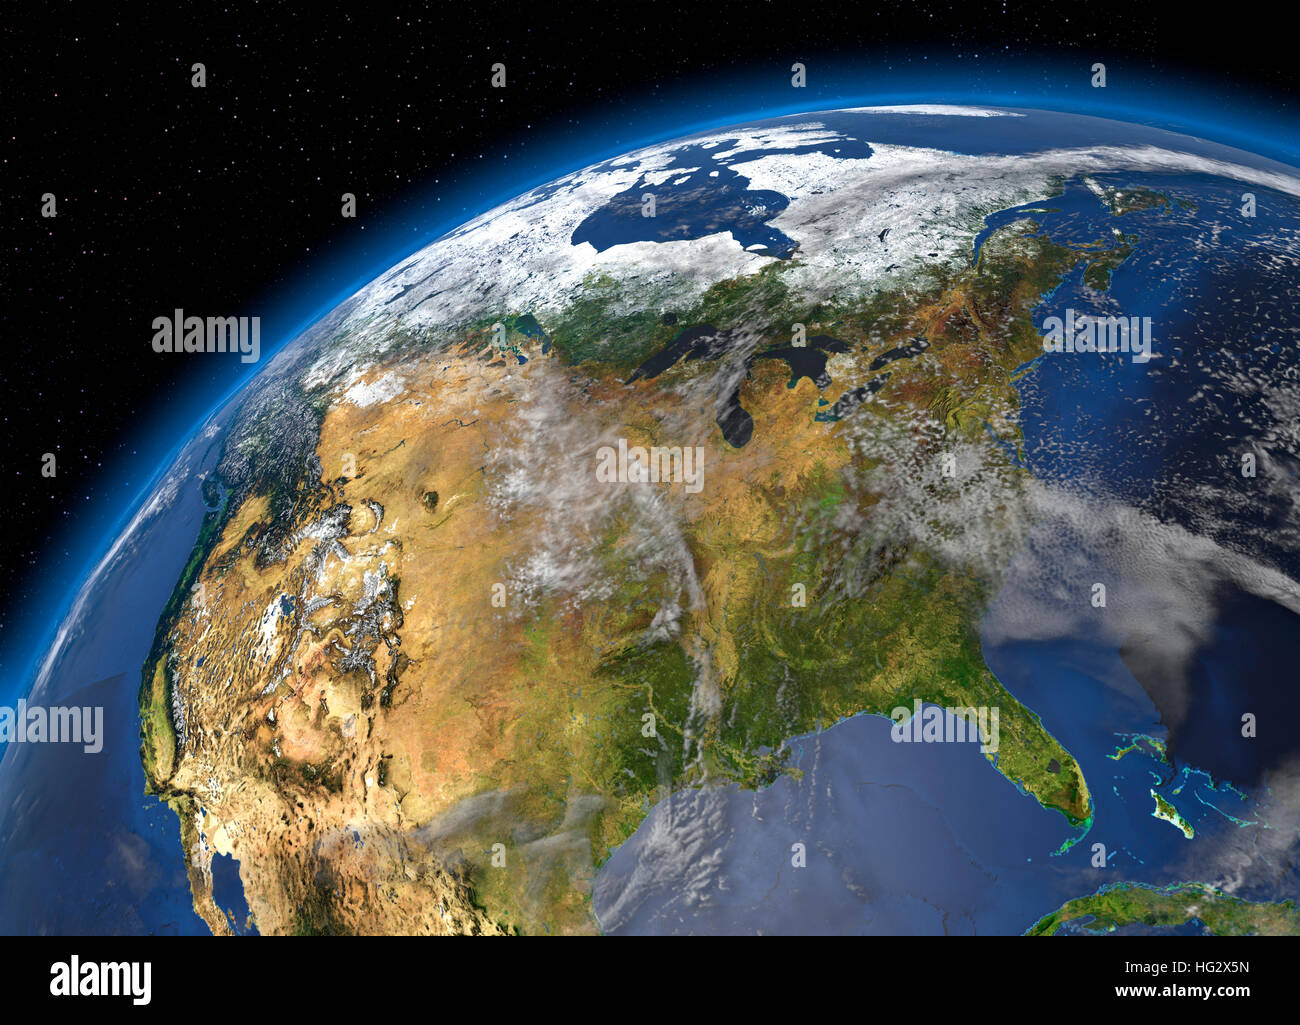 Earth viewed from space showing the united states realistic earth viewed from space showing the united states realistic digital illustration including relief map hill sciox Choice Image